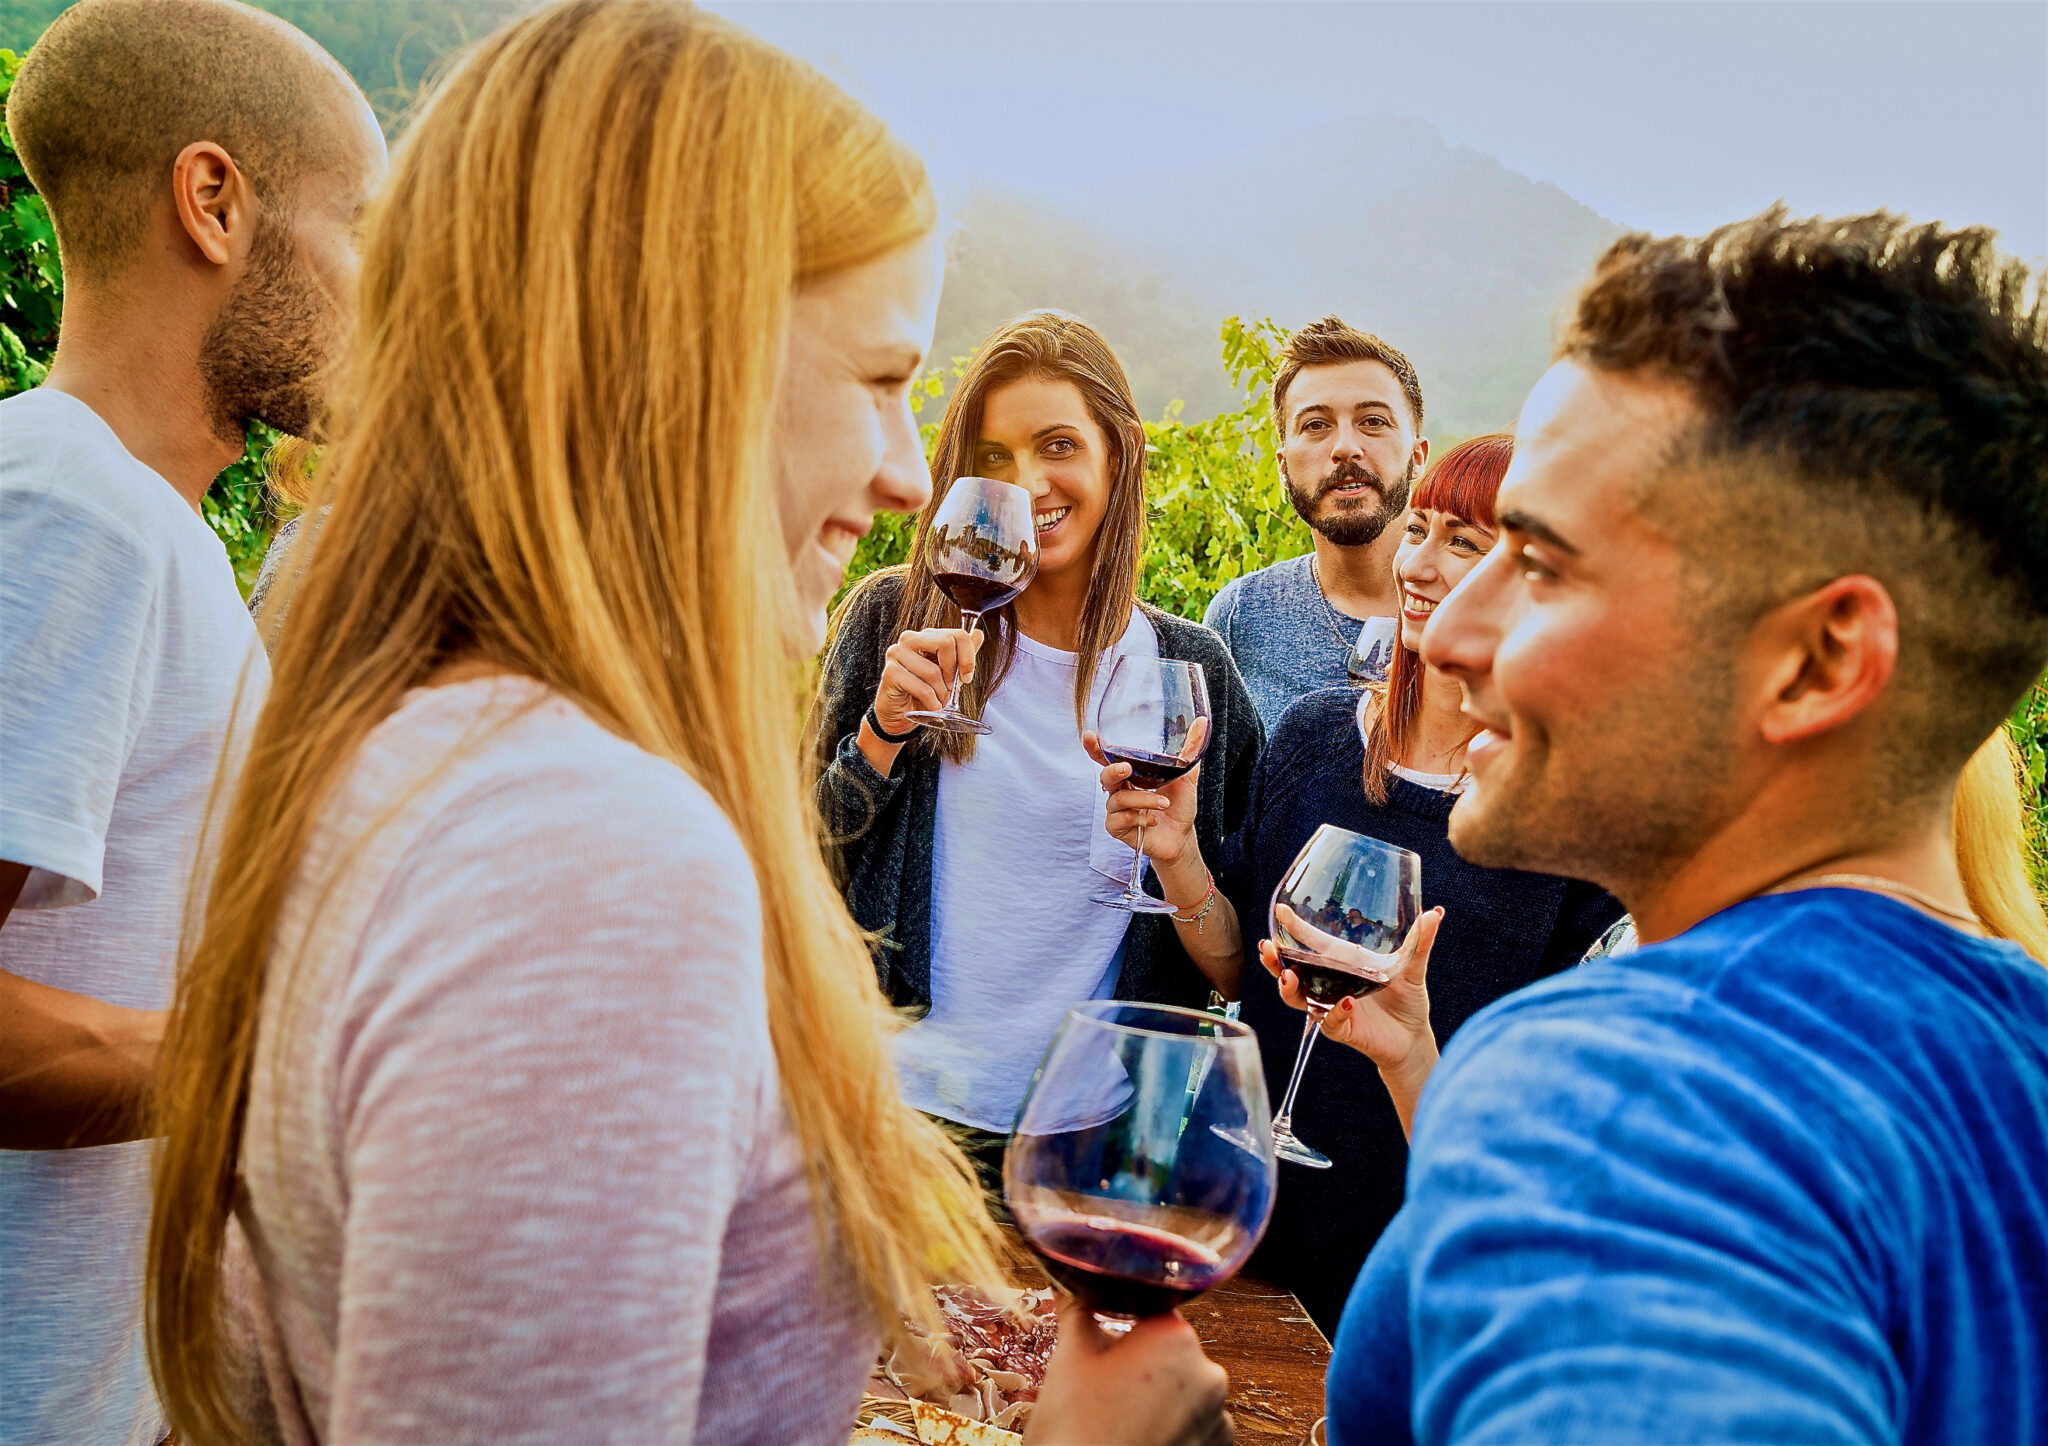 What's New In Sonoma Valley This Summer